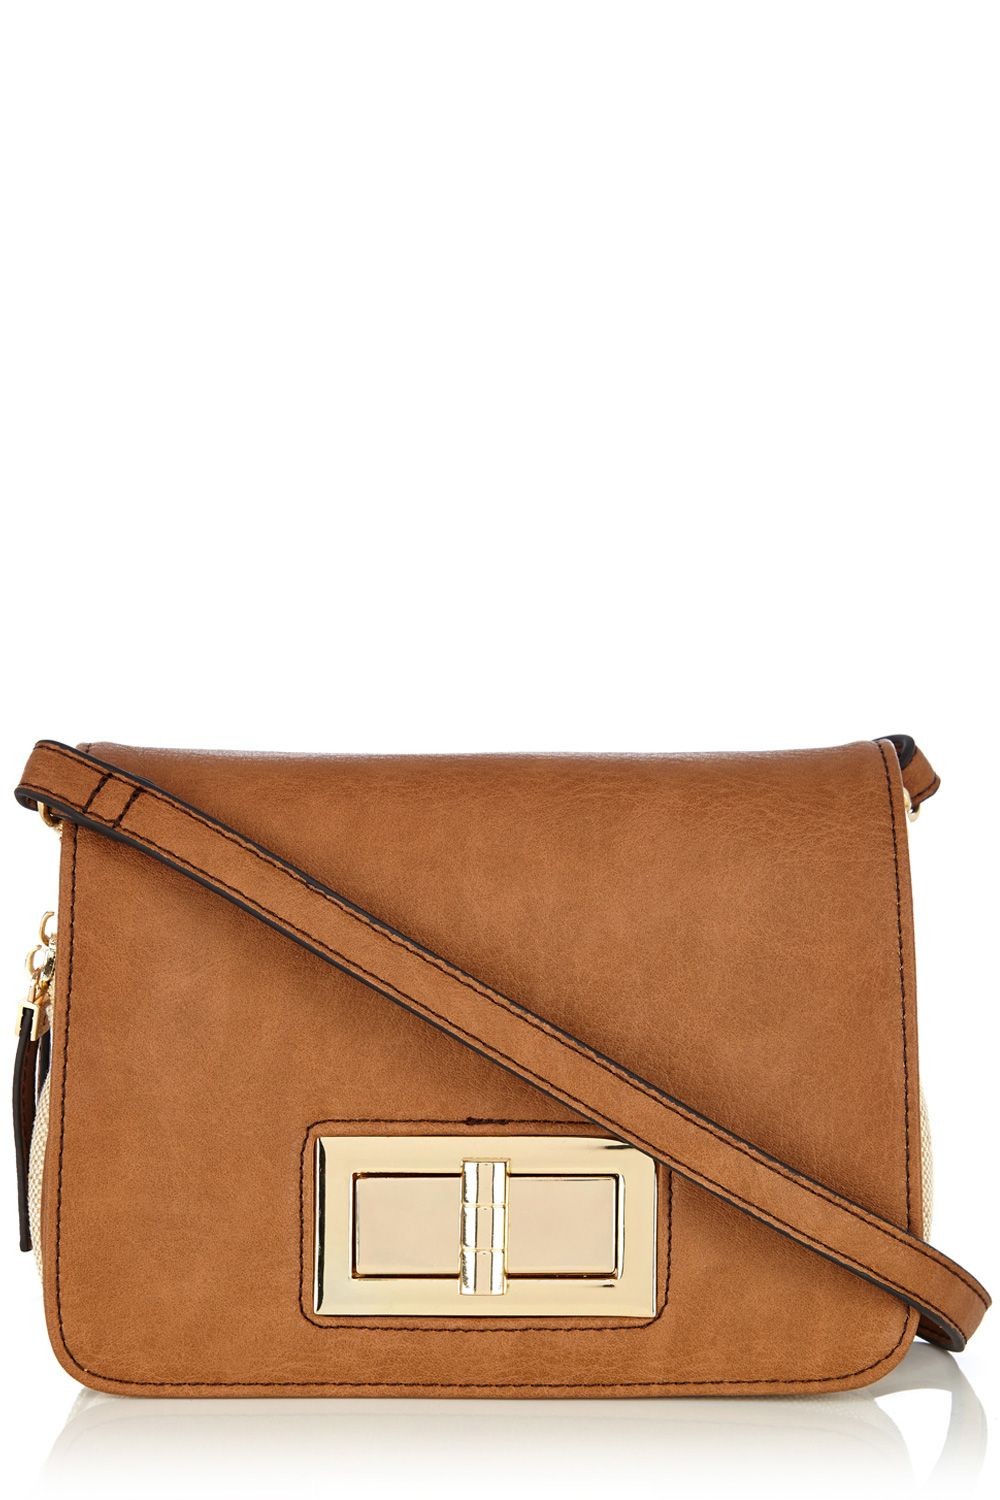 Canvas PU cross body bag